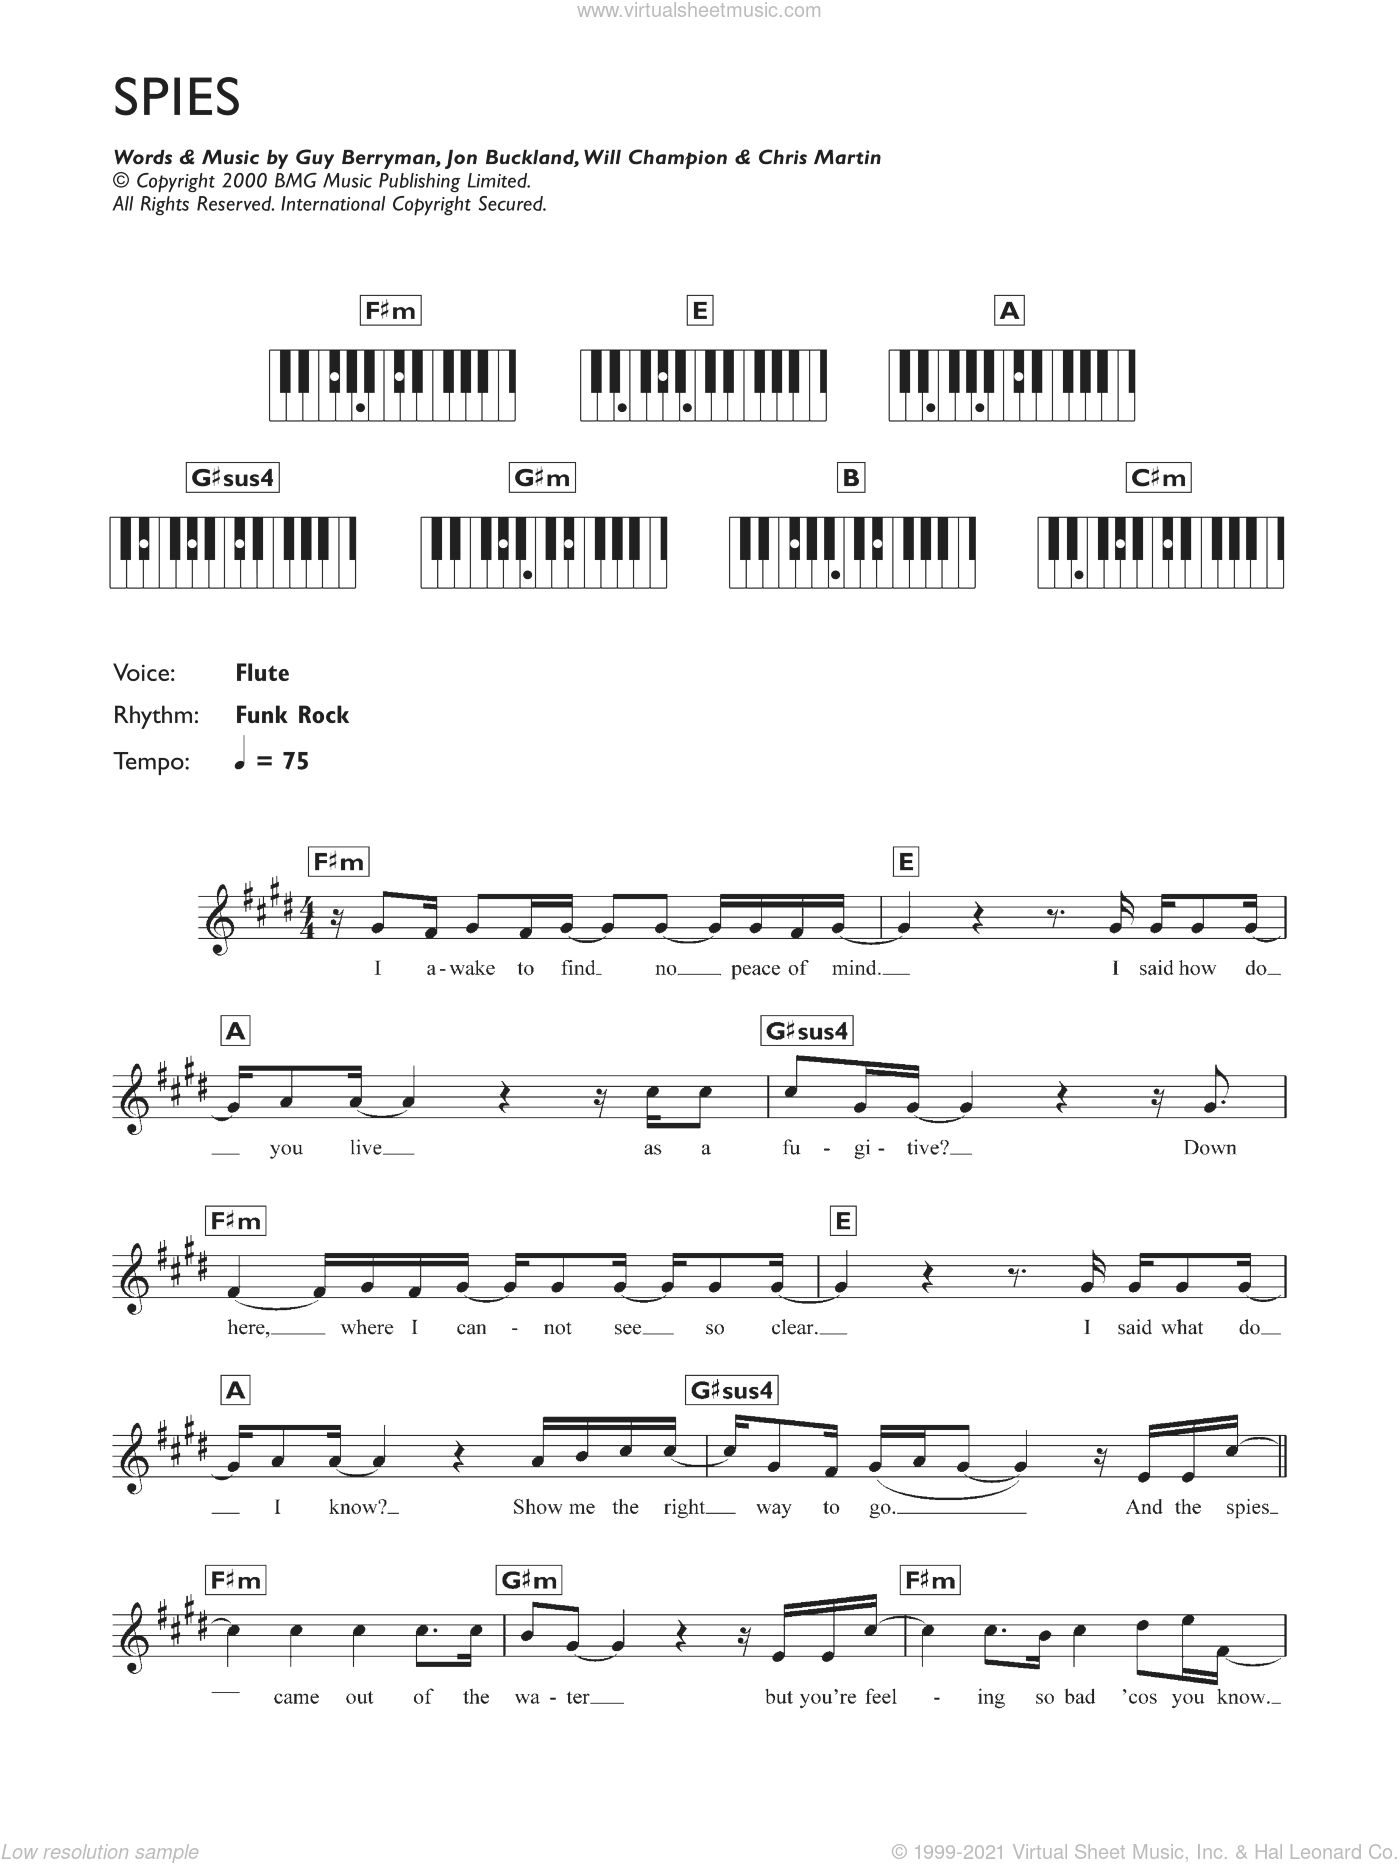 christmas light coldplay lyrics 2006 dodge magnum stereo wiring diagram spies sheet music for piano solo chords